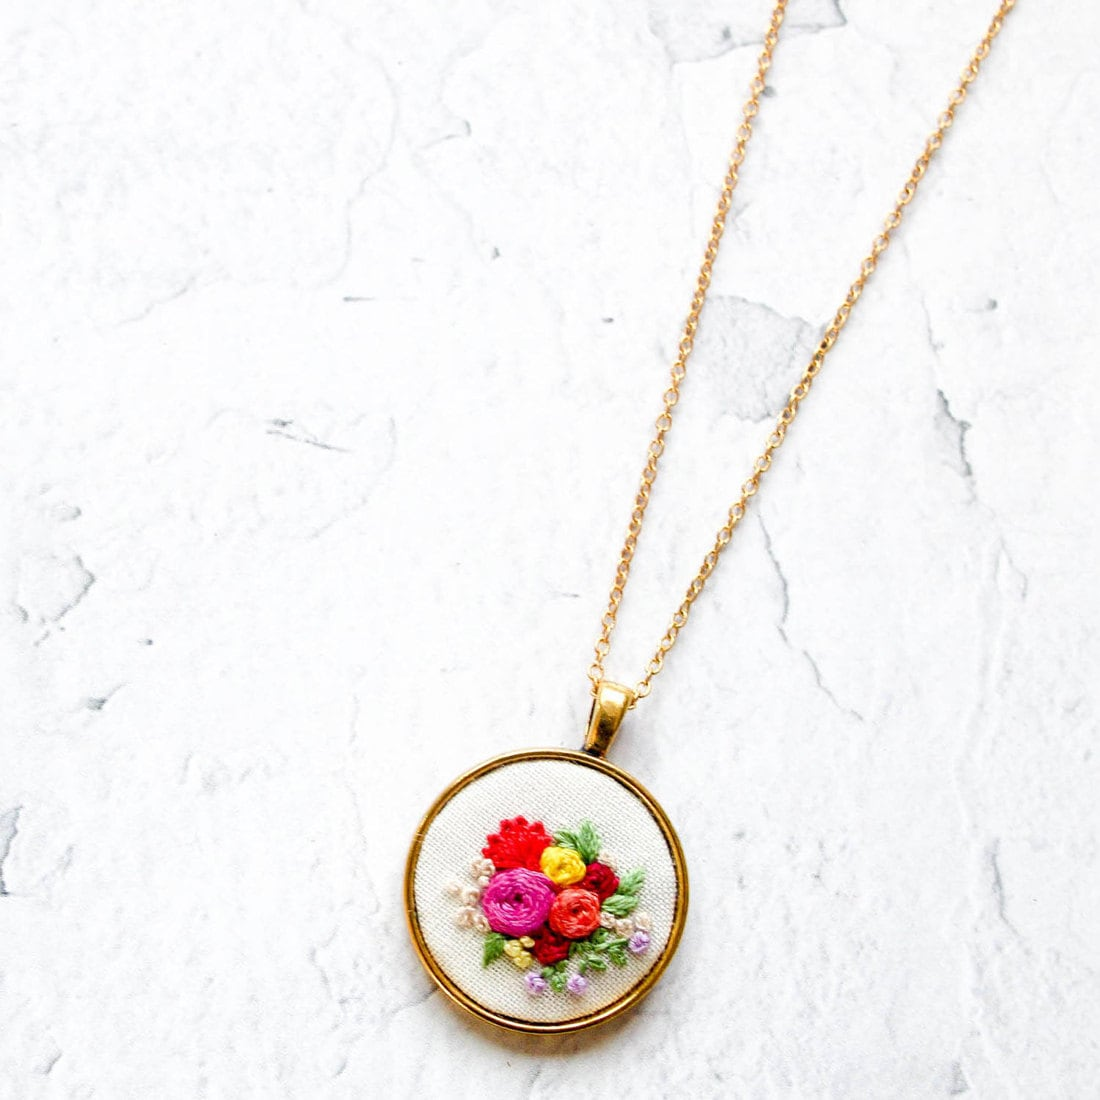 Vibrant floral embroidered necklace set in a circular gold pendant from Thursday Craft Love